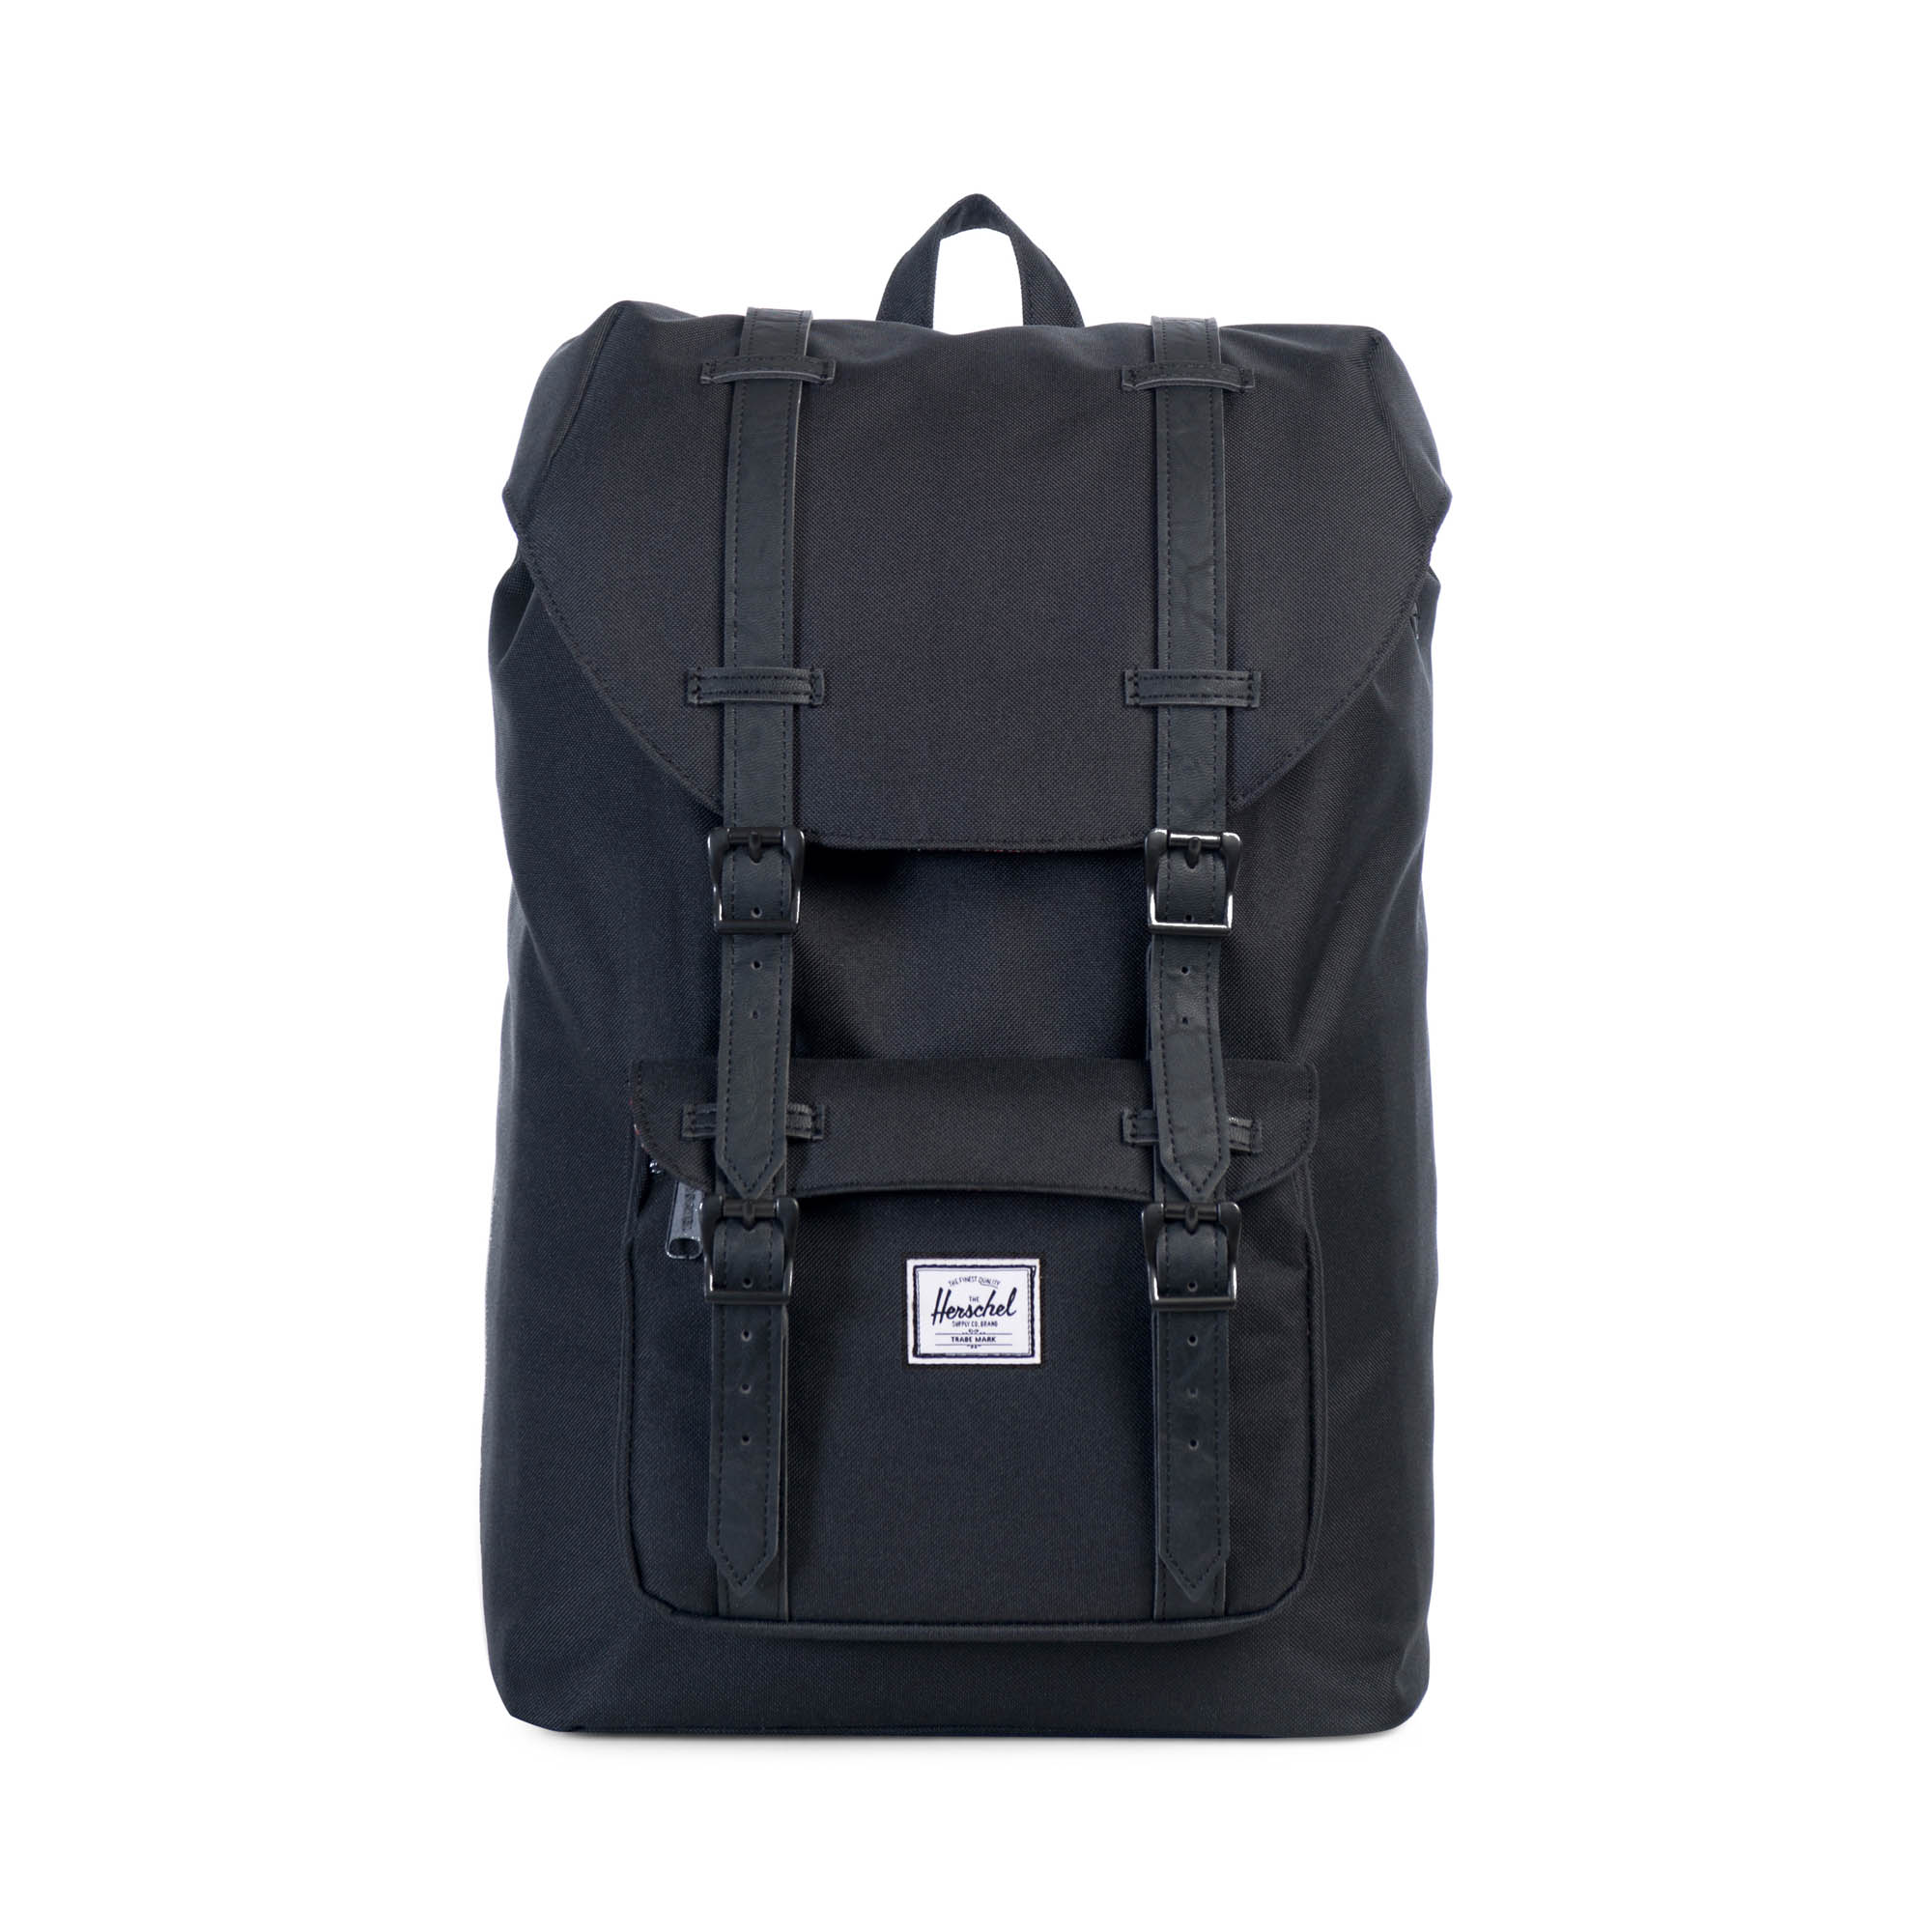 6992a7dc9d11 Herschel Little America Backpack Mid-Volume